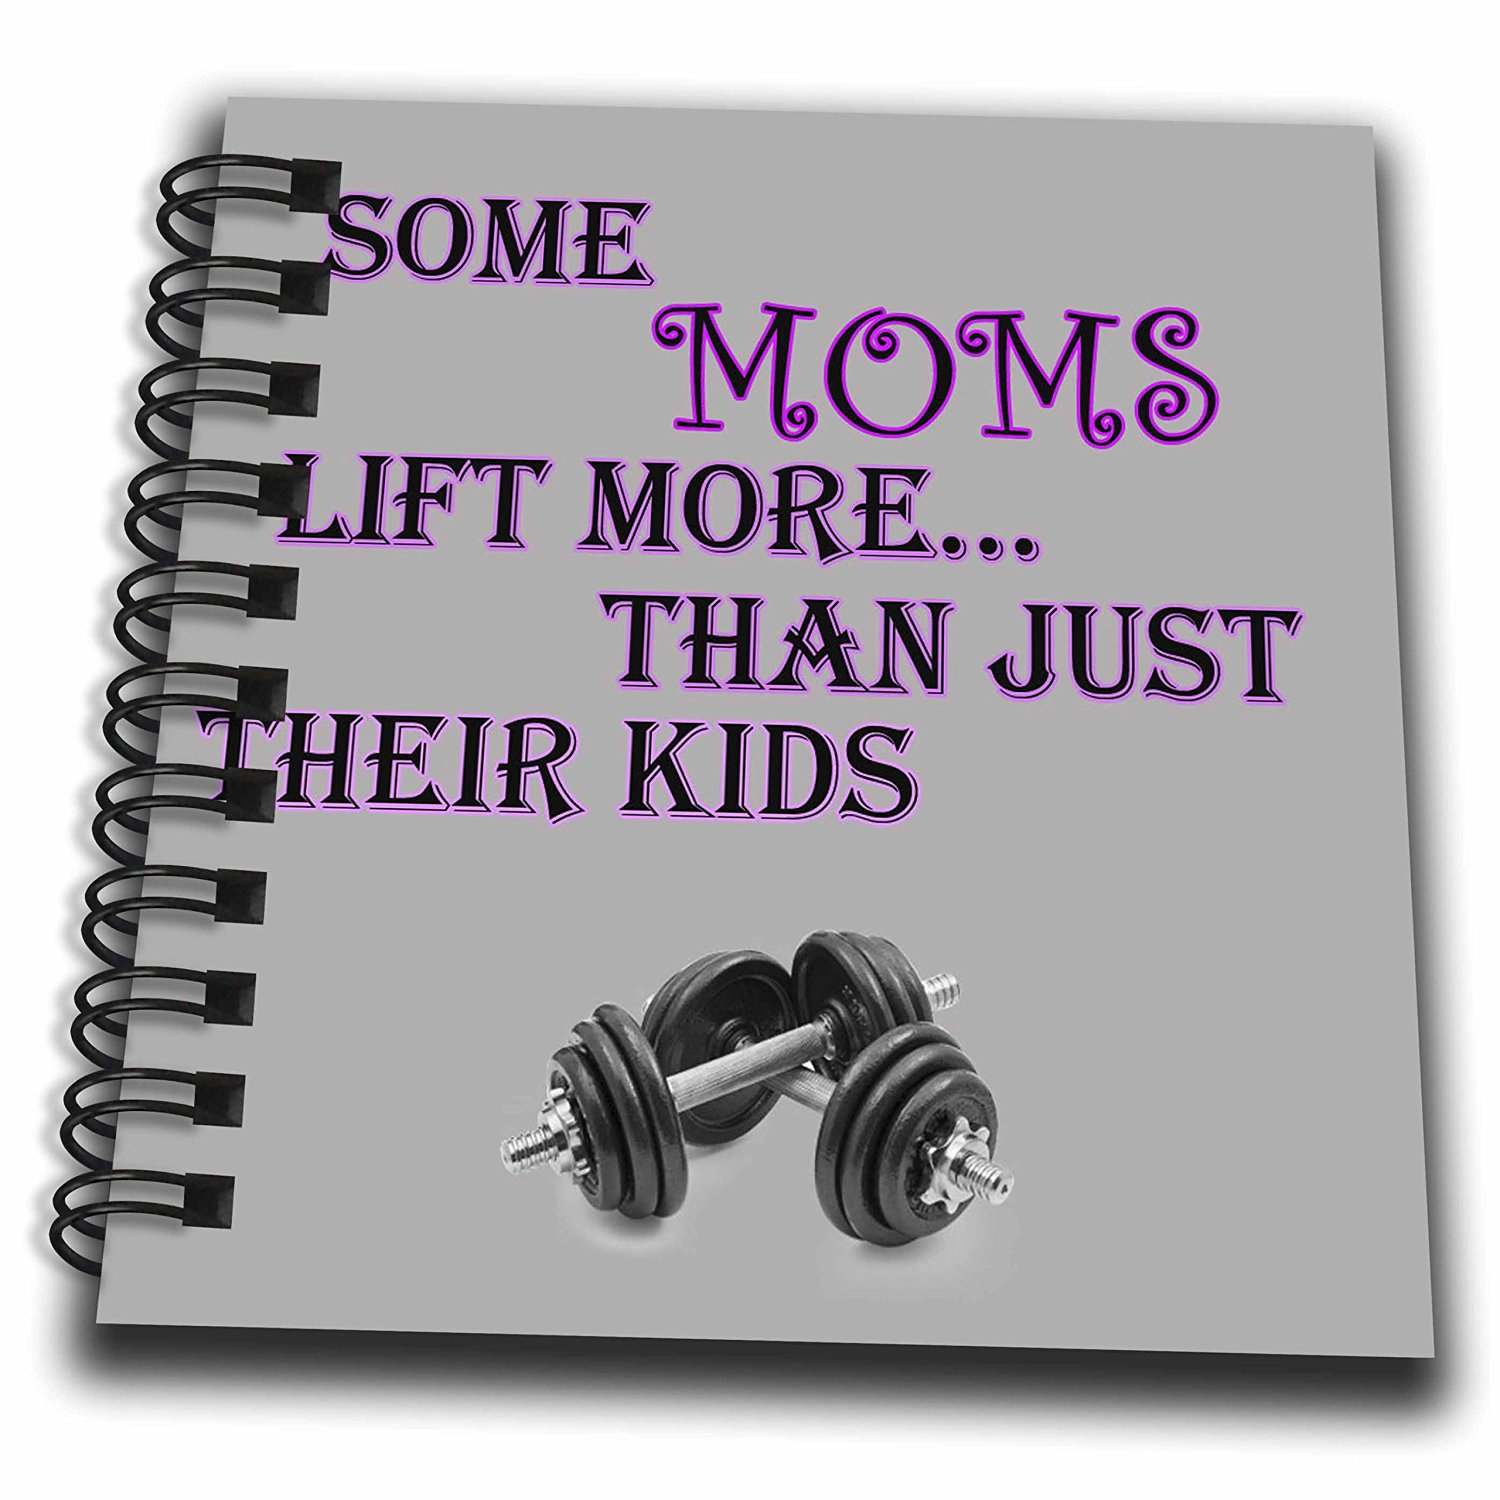 Buy Rinapiro Funny Quotes Some Moms Lift More Than Just Their Kids Gym Sexy Sport Saying 12x12 Inch Quilt Square Qs 214160 4 In Cheap Price On Alibaba Com